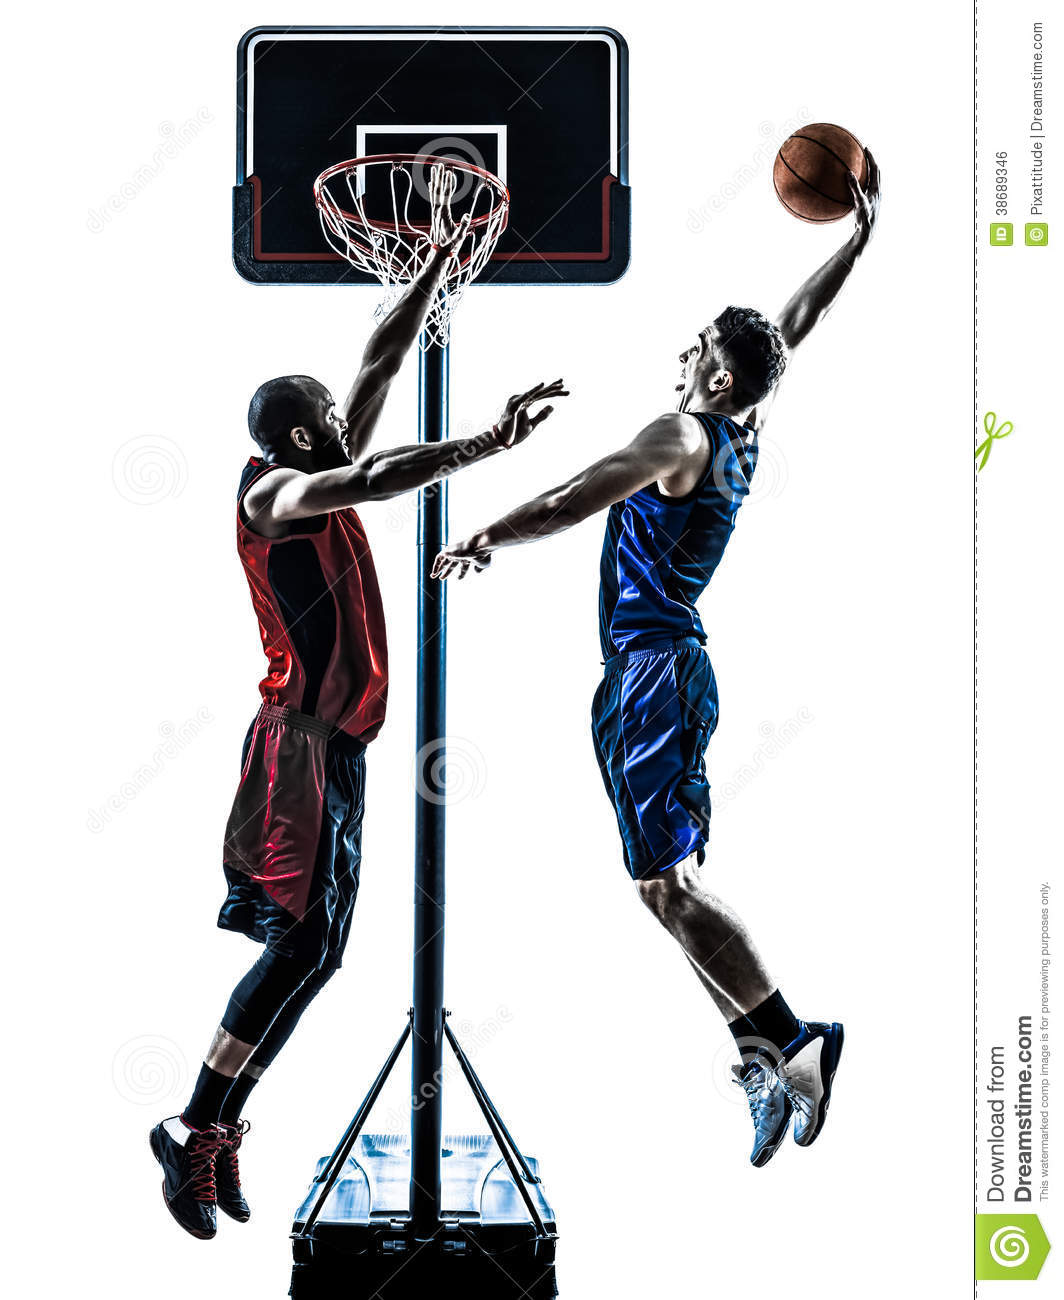 Basketball Players Man Jumping Dunking Silhouette Royalty Free Stock